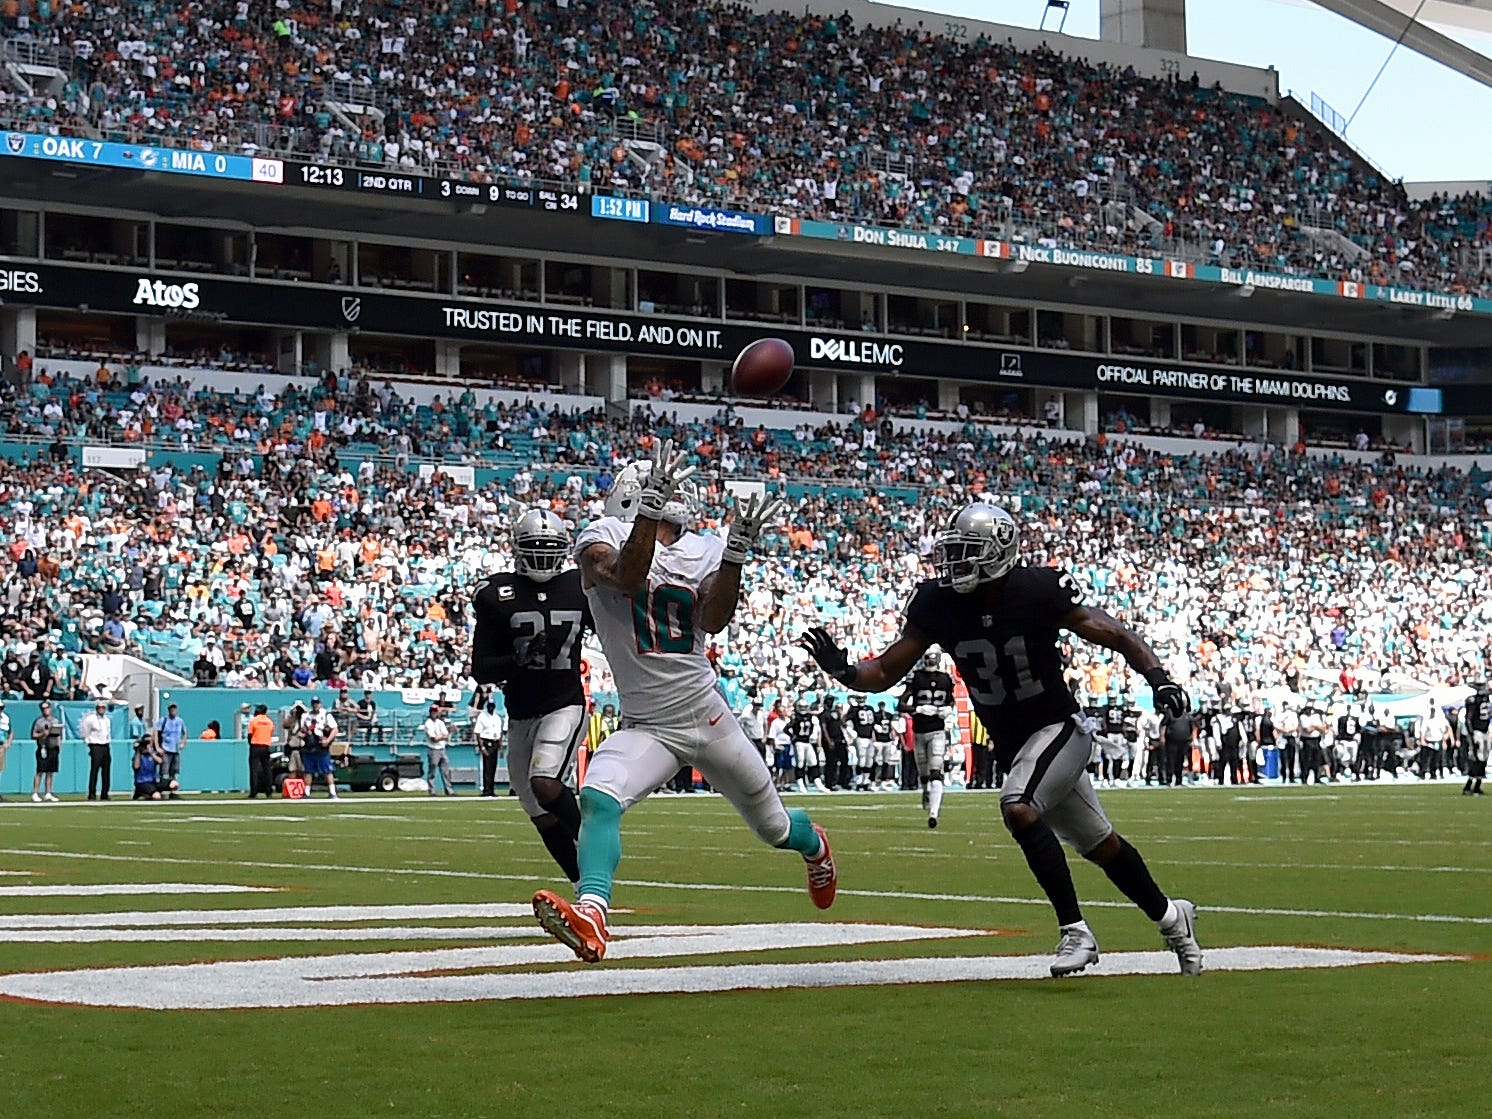 Miami Dolphins wide receiver Kenny Stills catches a pass for a touchdown against Oakland Raiders defensive back Marcus Gilchrist during the first half at Hard Rock Stadium.